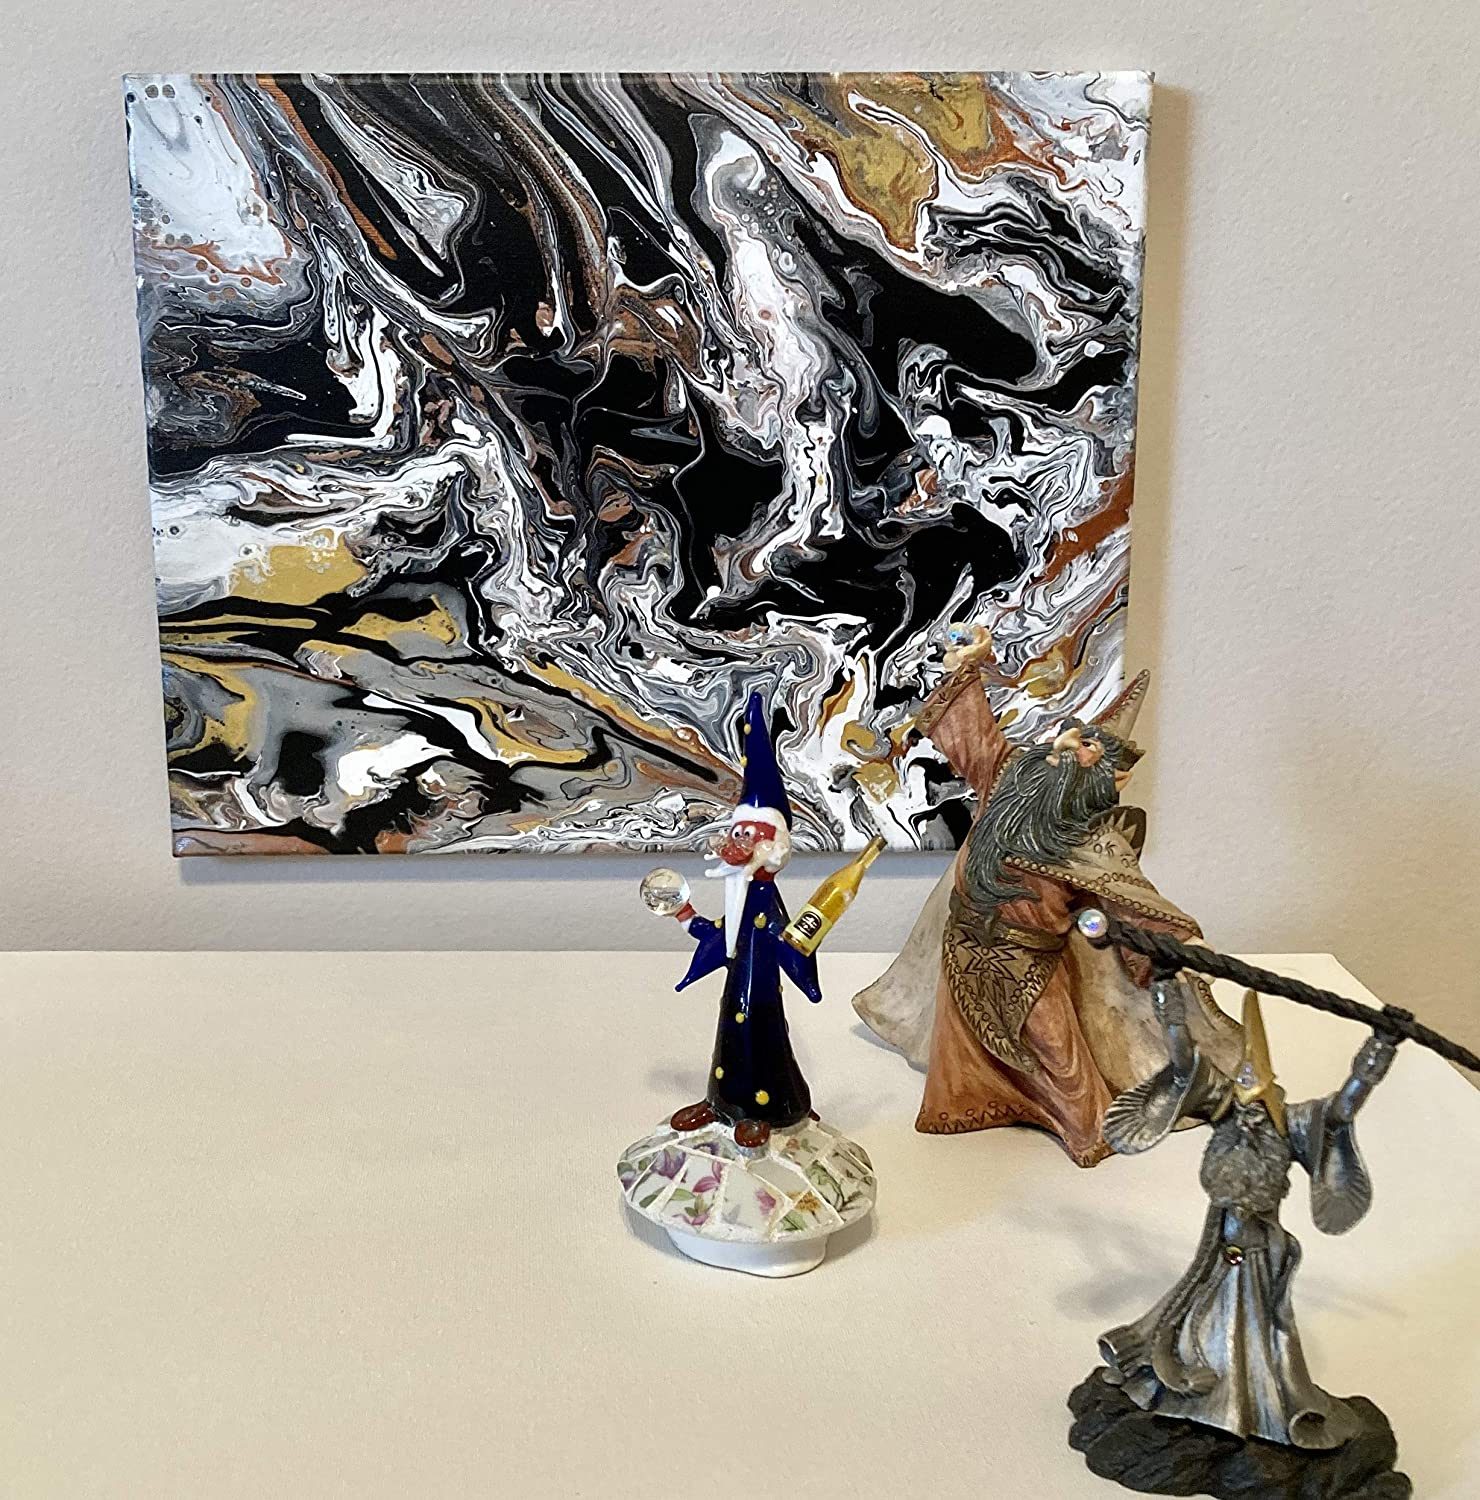 16 x 20 Regular store Inch Original Handmade Pour - Canvas Quality inspection On Painting Acrylic